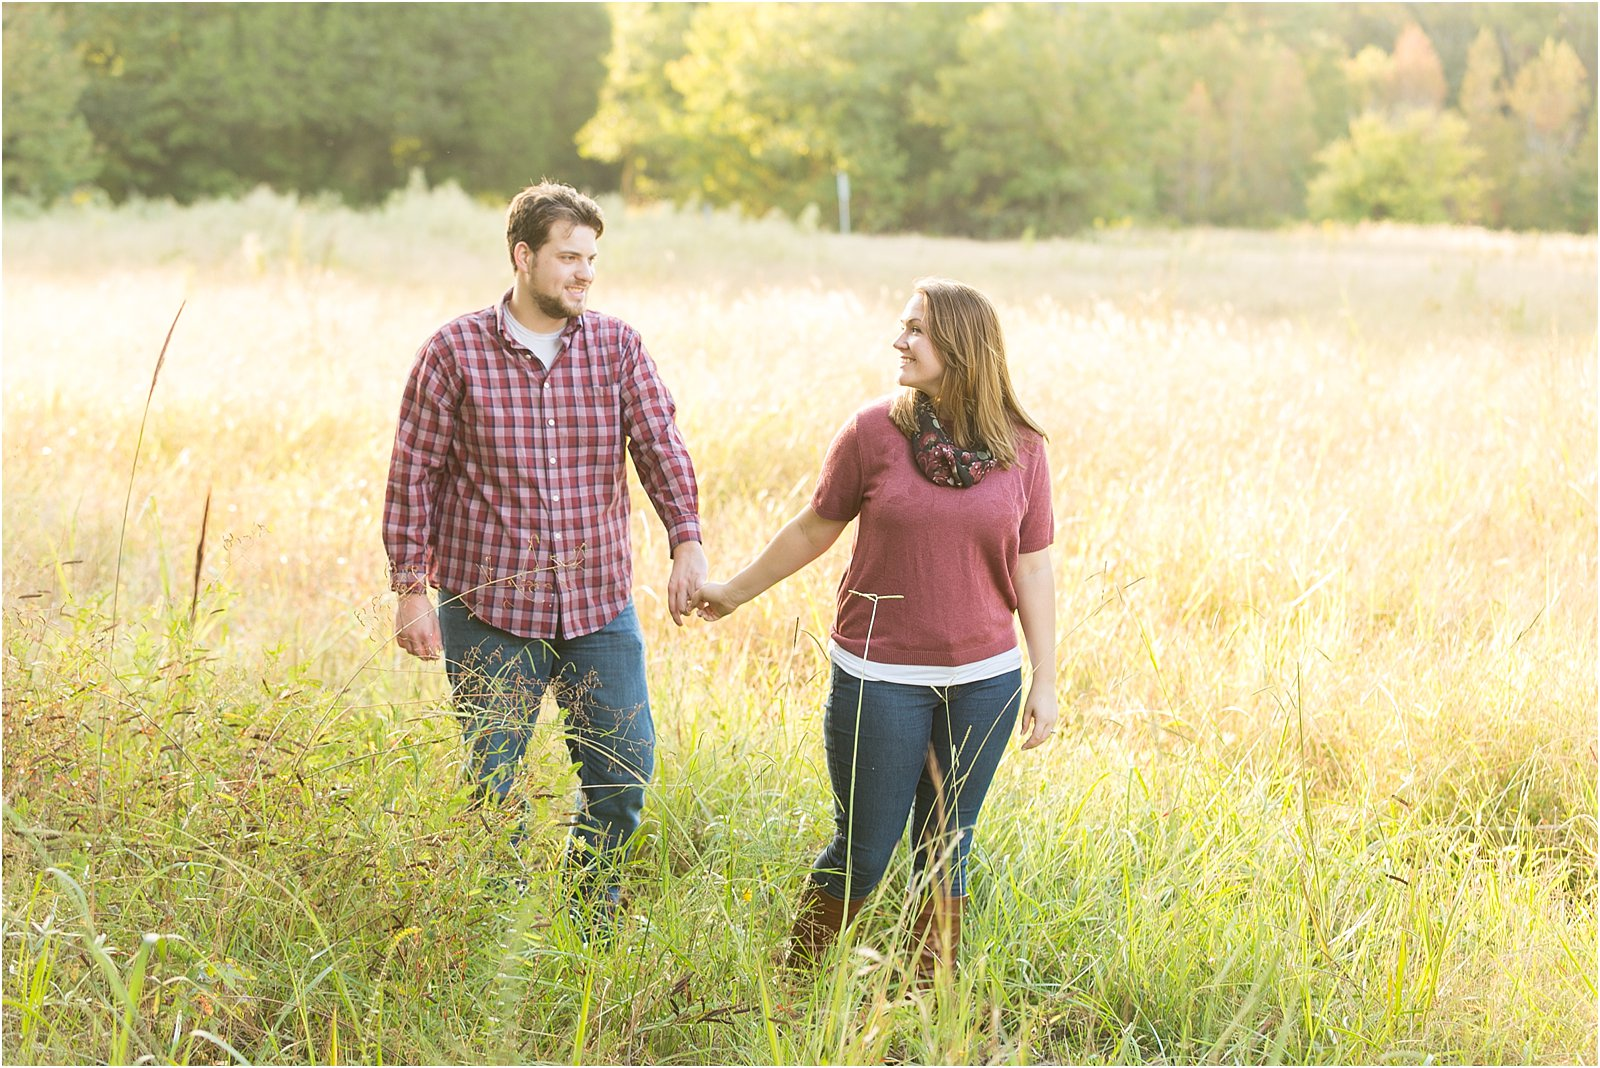 jessica_ryan_photography_pumpkin_patch_engagement_portraits_fall_october_engagements_virginia_beach_chesapeake_0302